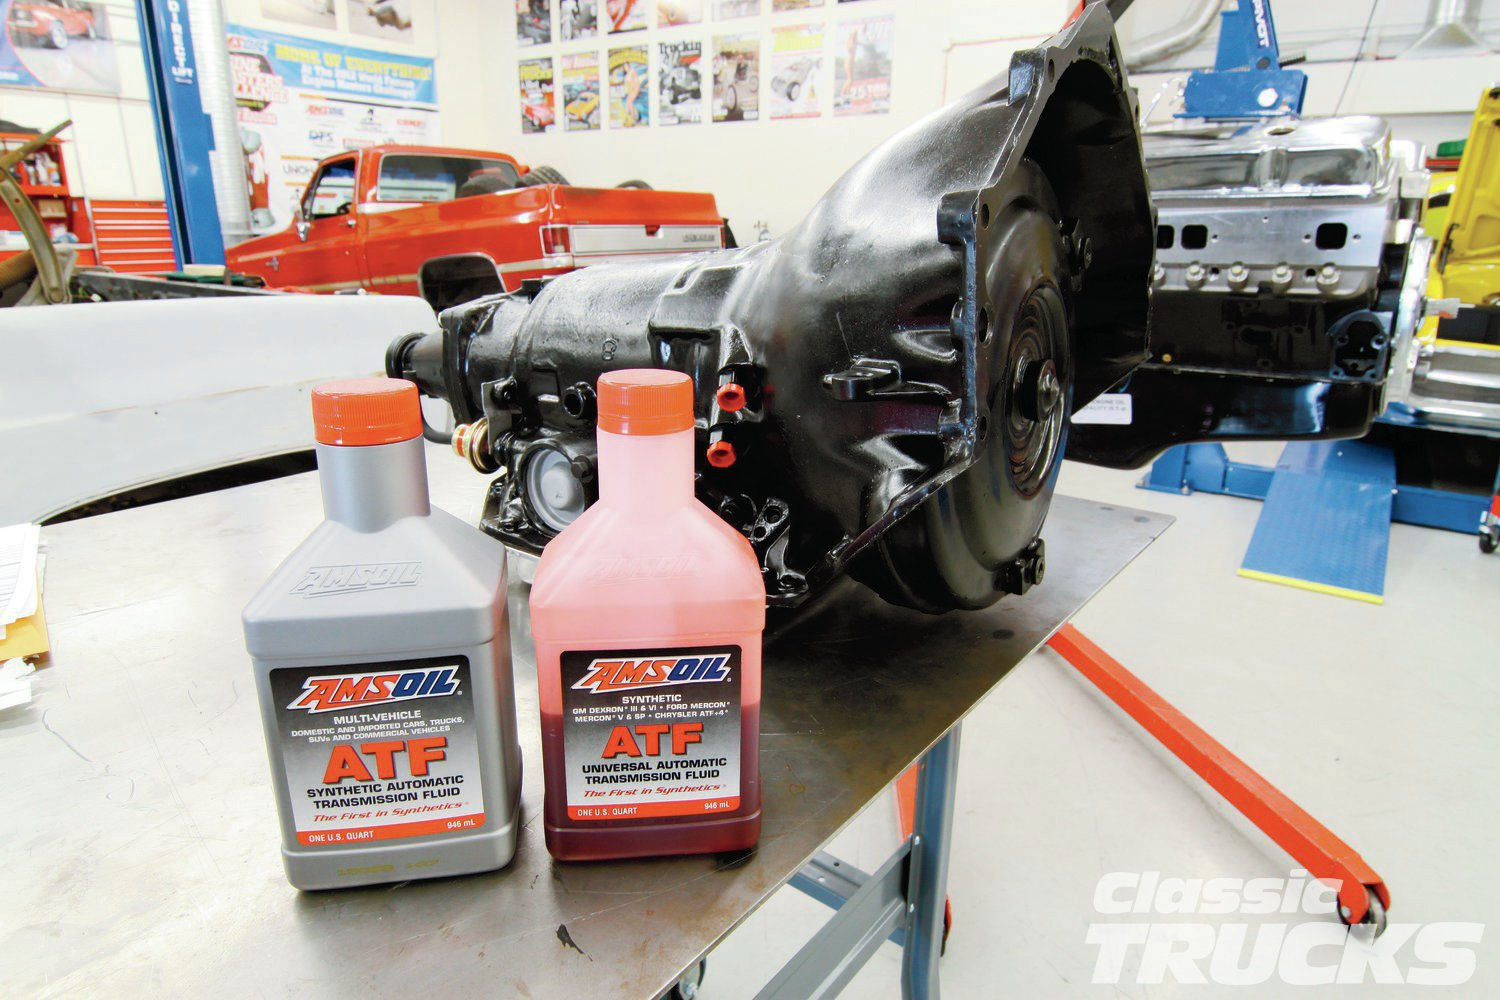 5. AMSOIL makes a really great ATF for our TH350. After I measure the torque converter I like to remove it and add a quart of ATF to prime the torque converter.